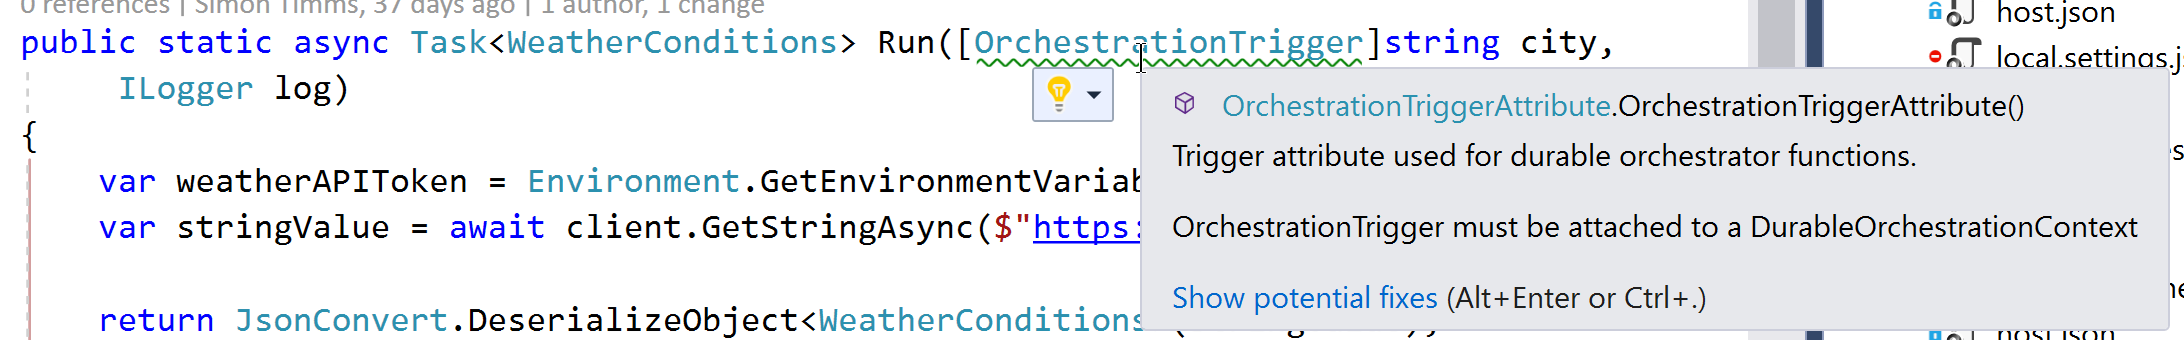 Orchestration trigger on the wrong data type